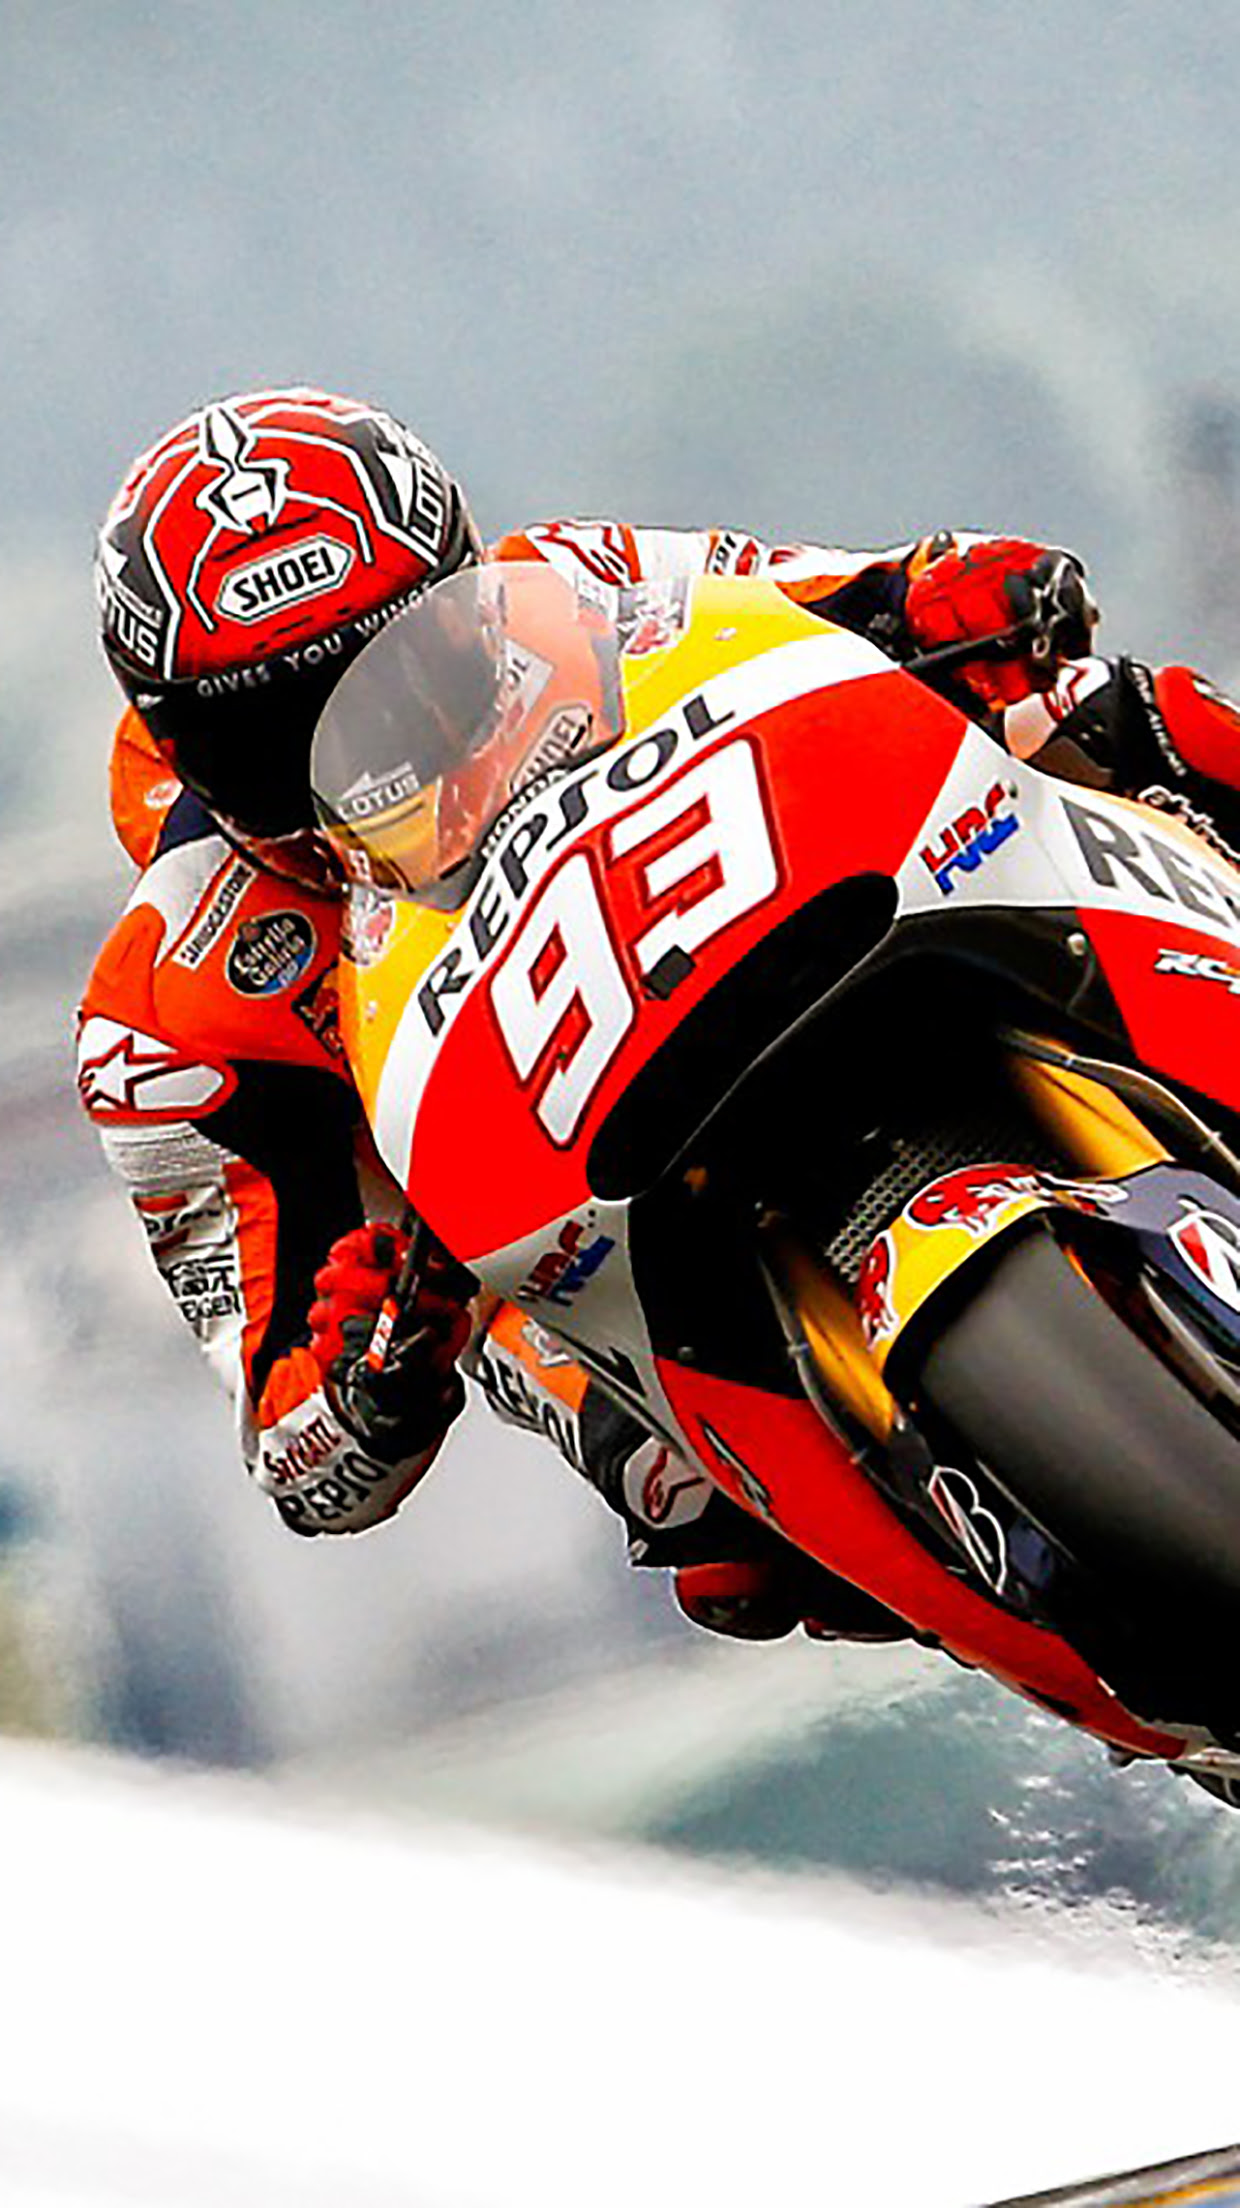 MotoGP 1 Wallpaper for iPhone X, 8, 7, 6  Free Download on 3Wallpapers